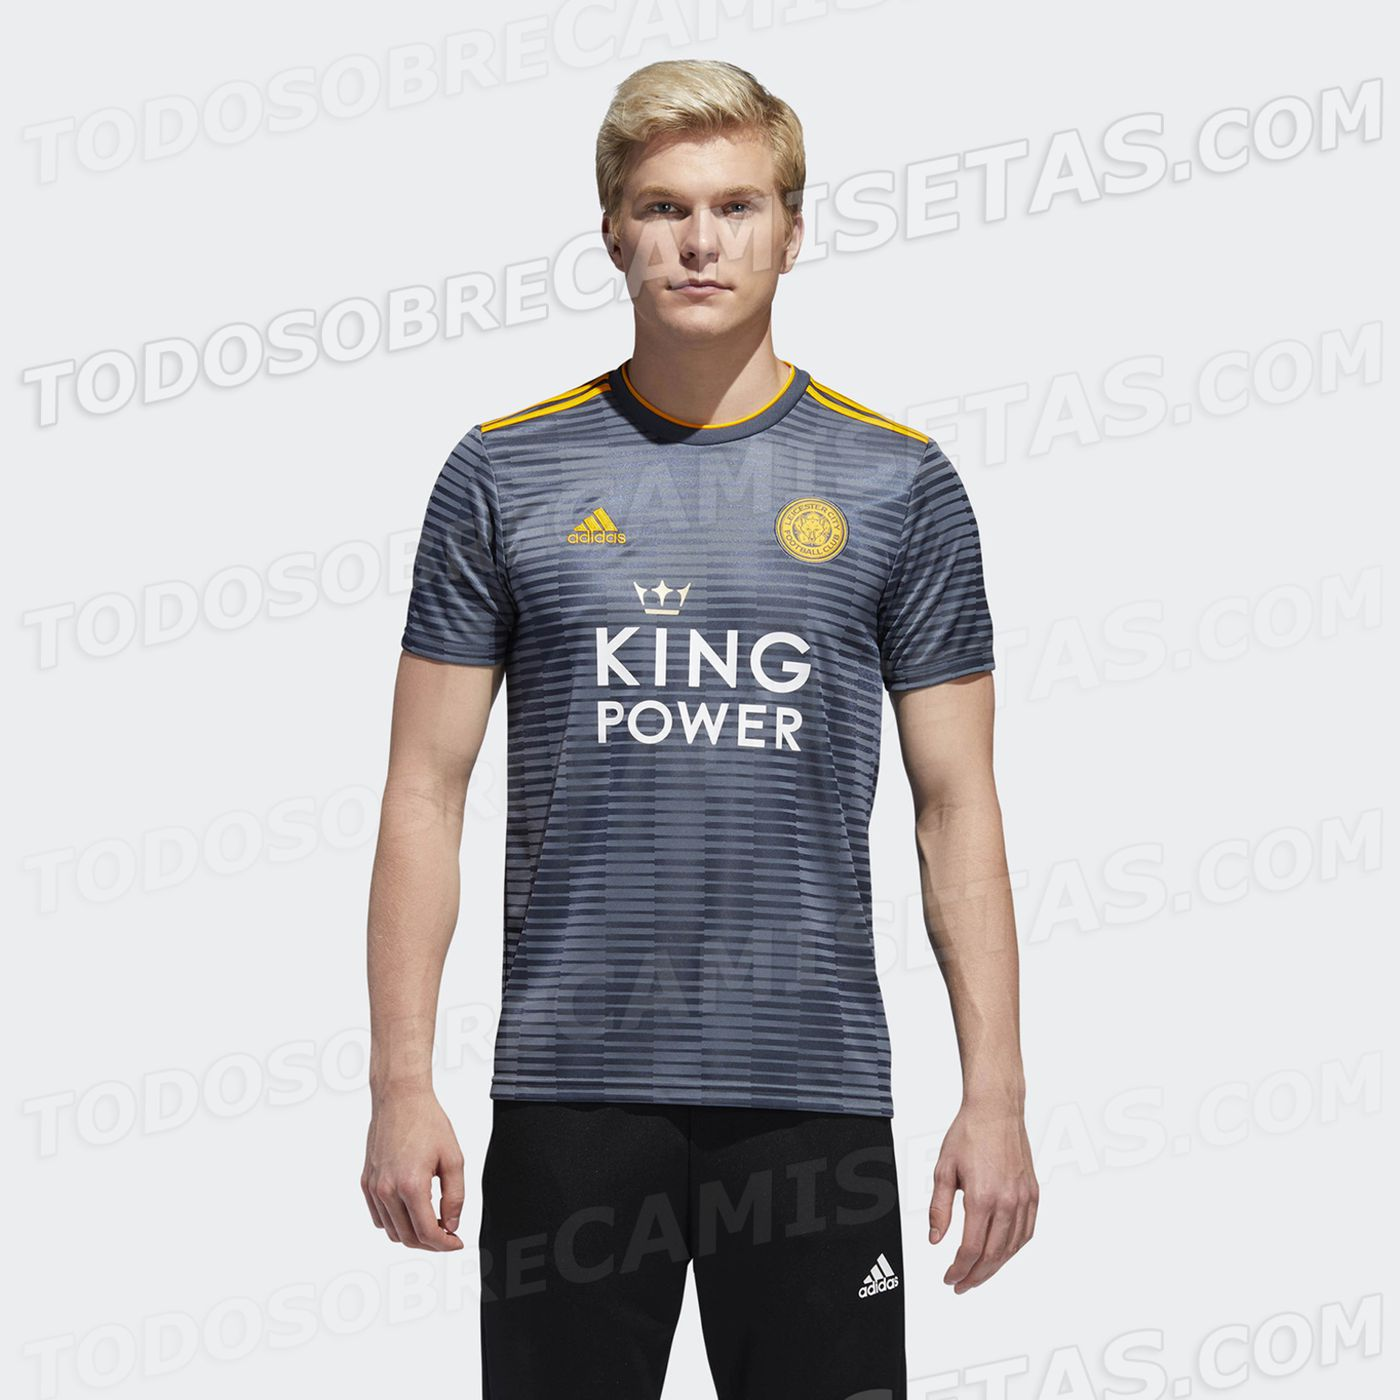 b448335c8b2 Leicester City officially unveils 2018-19 home kit, secondary kit leaks.  The new Adidas deal is ...